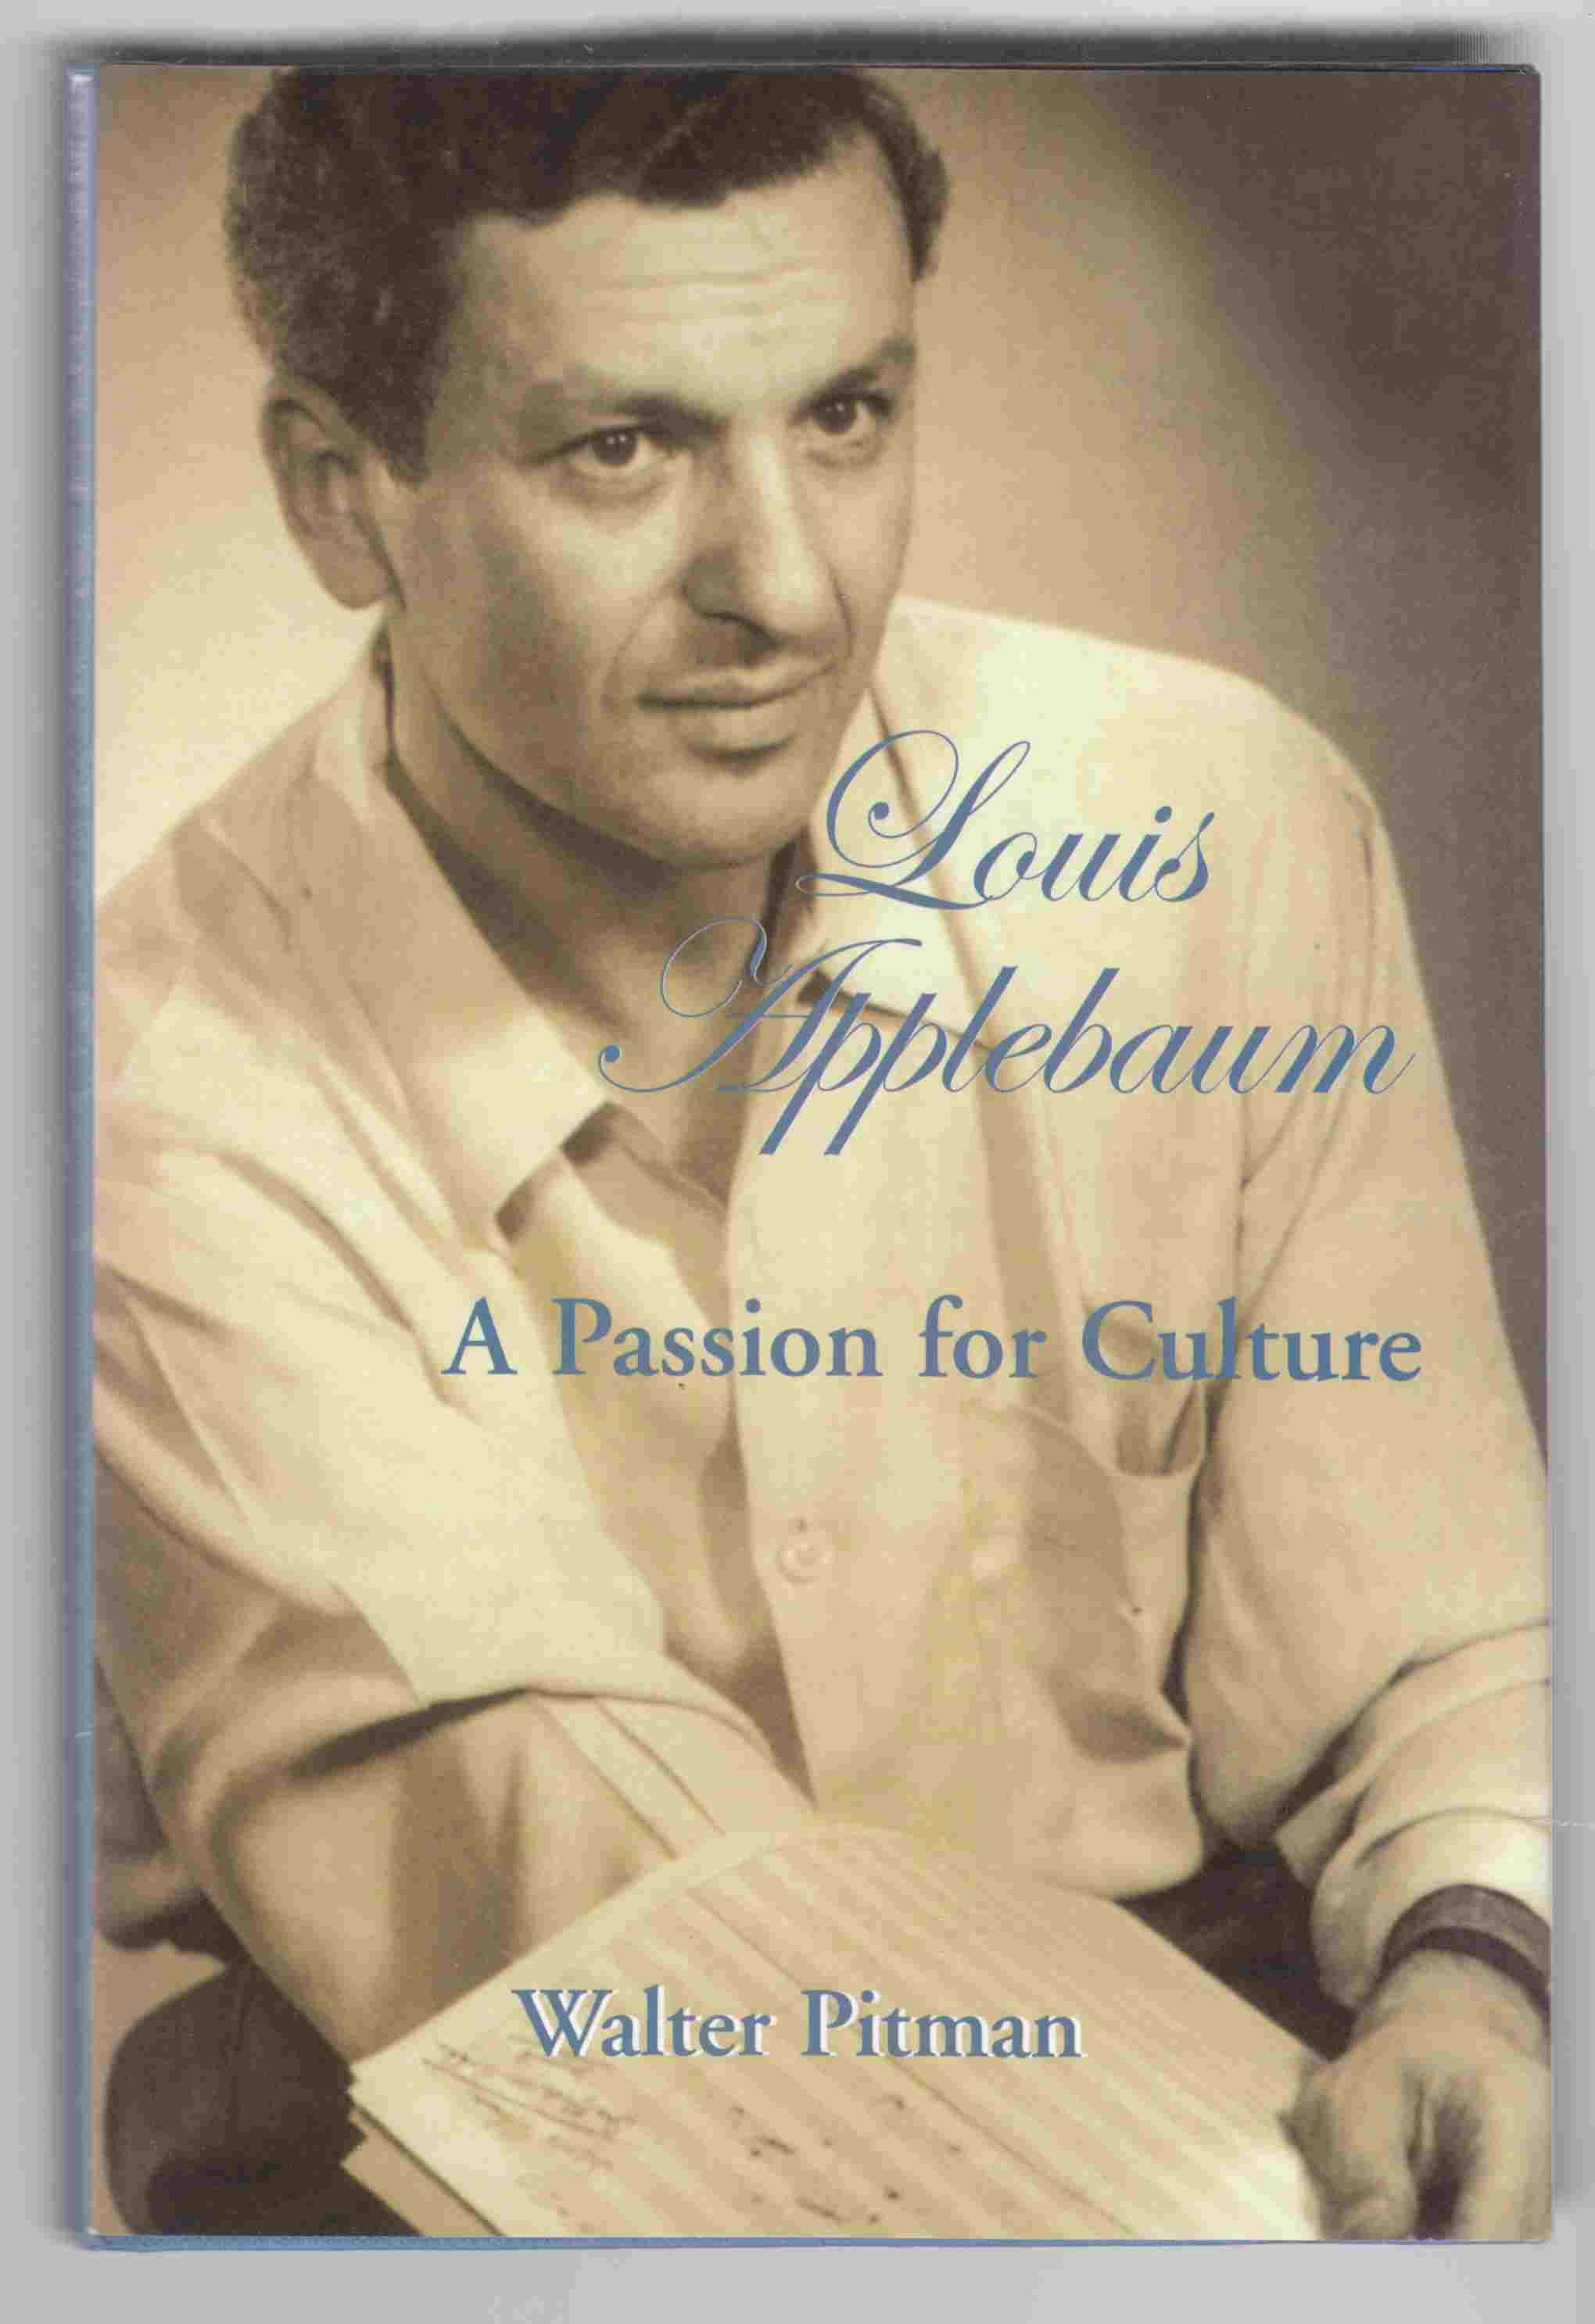 Image for Louis Applebaum A Passion for Culture